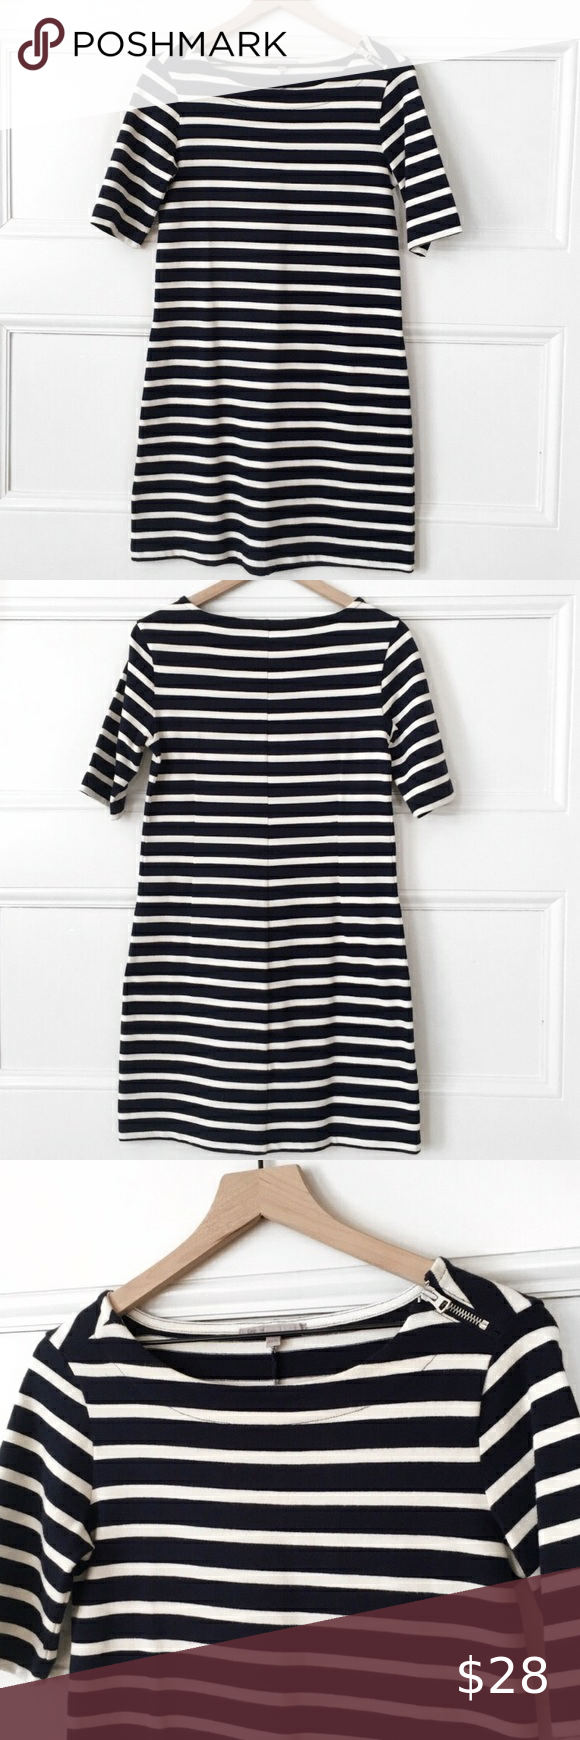 Navy White Striped Casual Dress Zipper Shoulder Excellent Used Condition Very Well Cared Fo Striped Casual Dresses Short Dresses Casual Short Sleeve Dresses [ 1740 x 580 Pixel ]